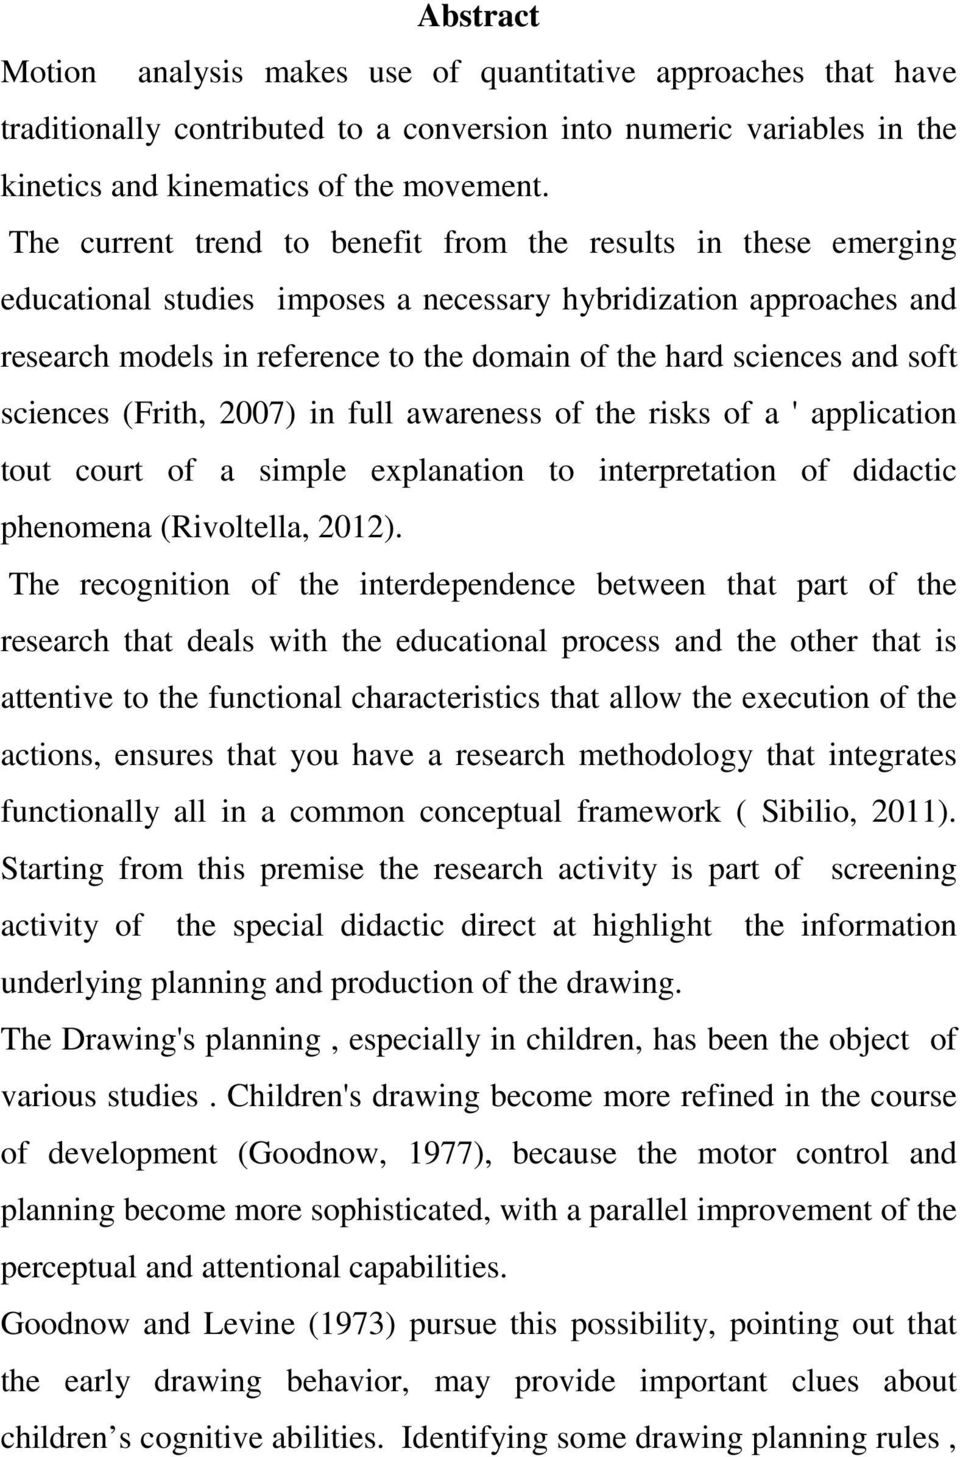 and soft sciences (Frith, 2007) in full awareness of the risks of a ' application tout court of a simple explanation to interpretation of didactic phenomena (Rivoltella, 2012).